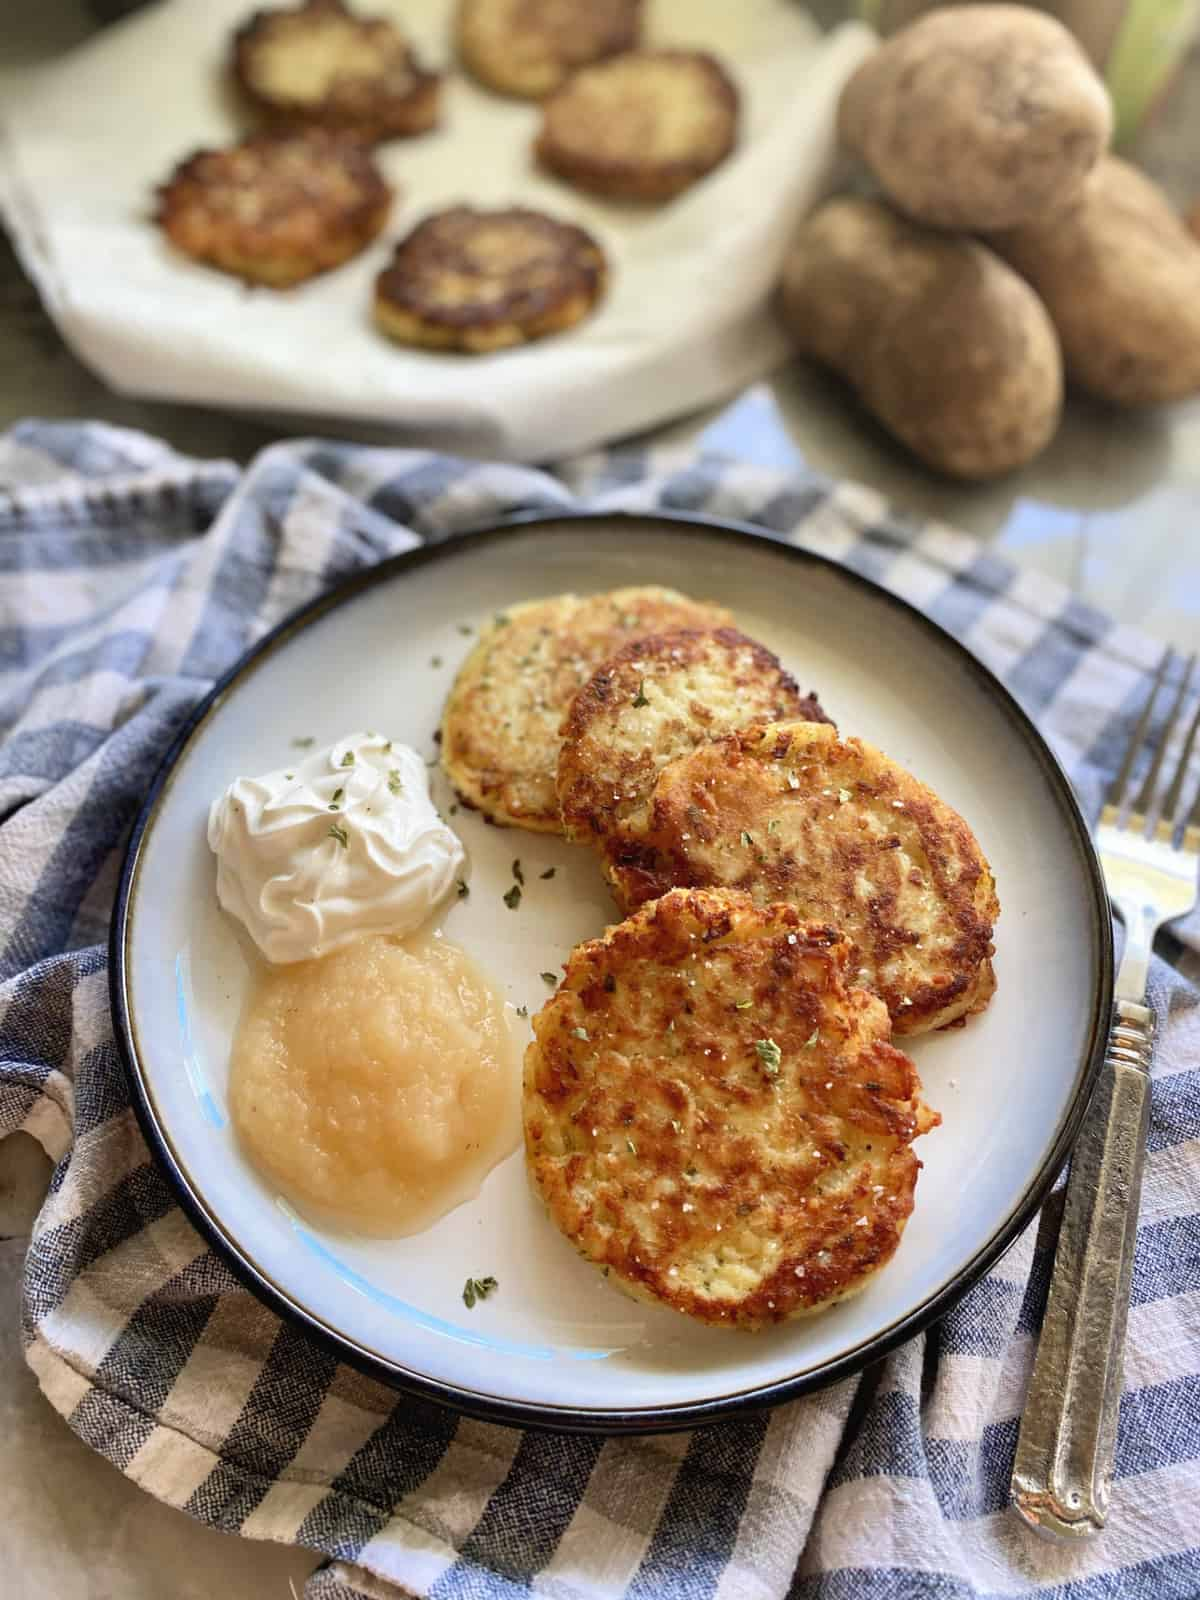 Plate of four mashed potato cakes with sour cream and applesauce next to it.